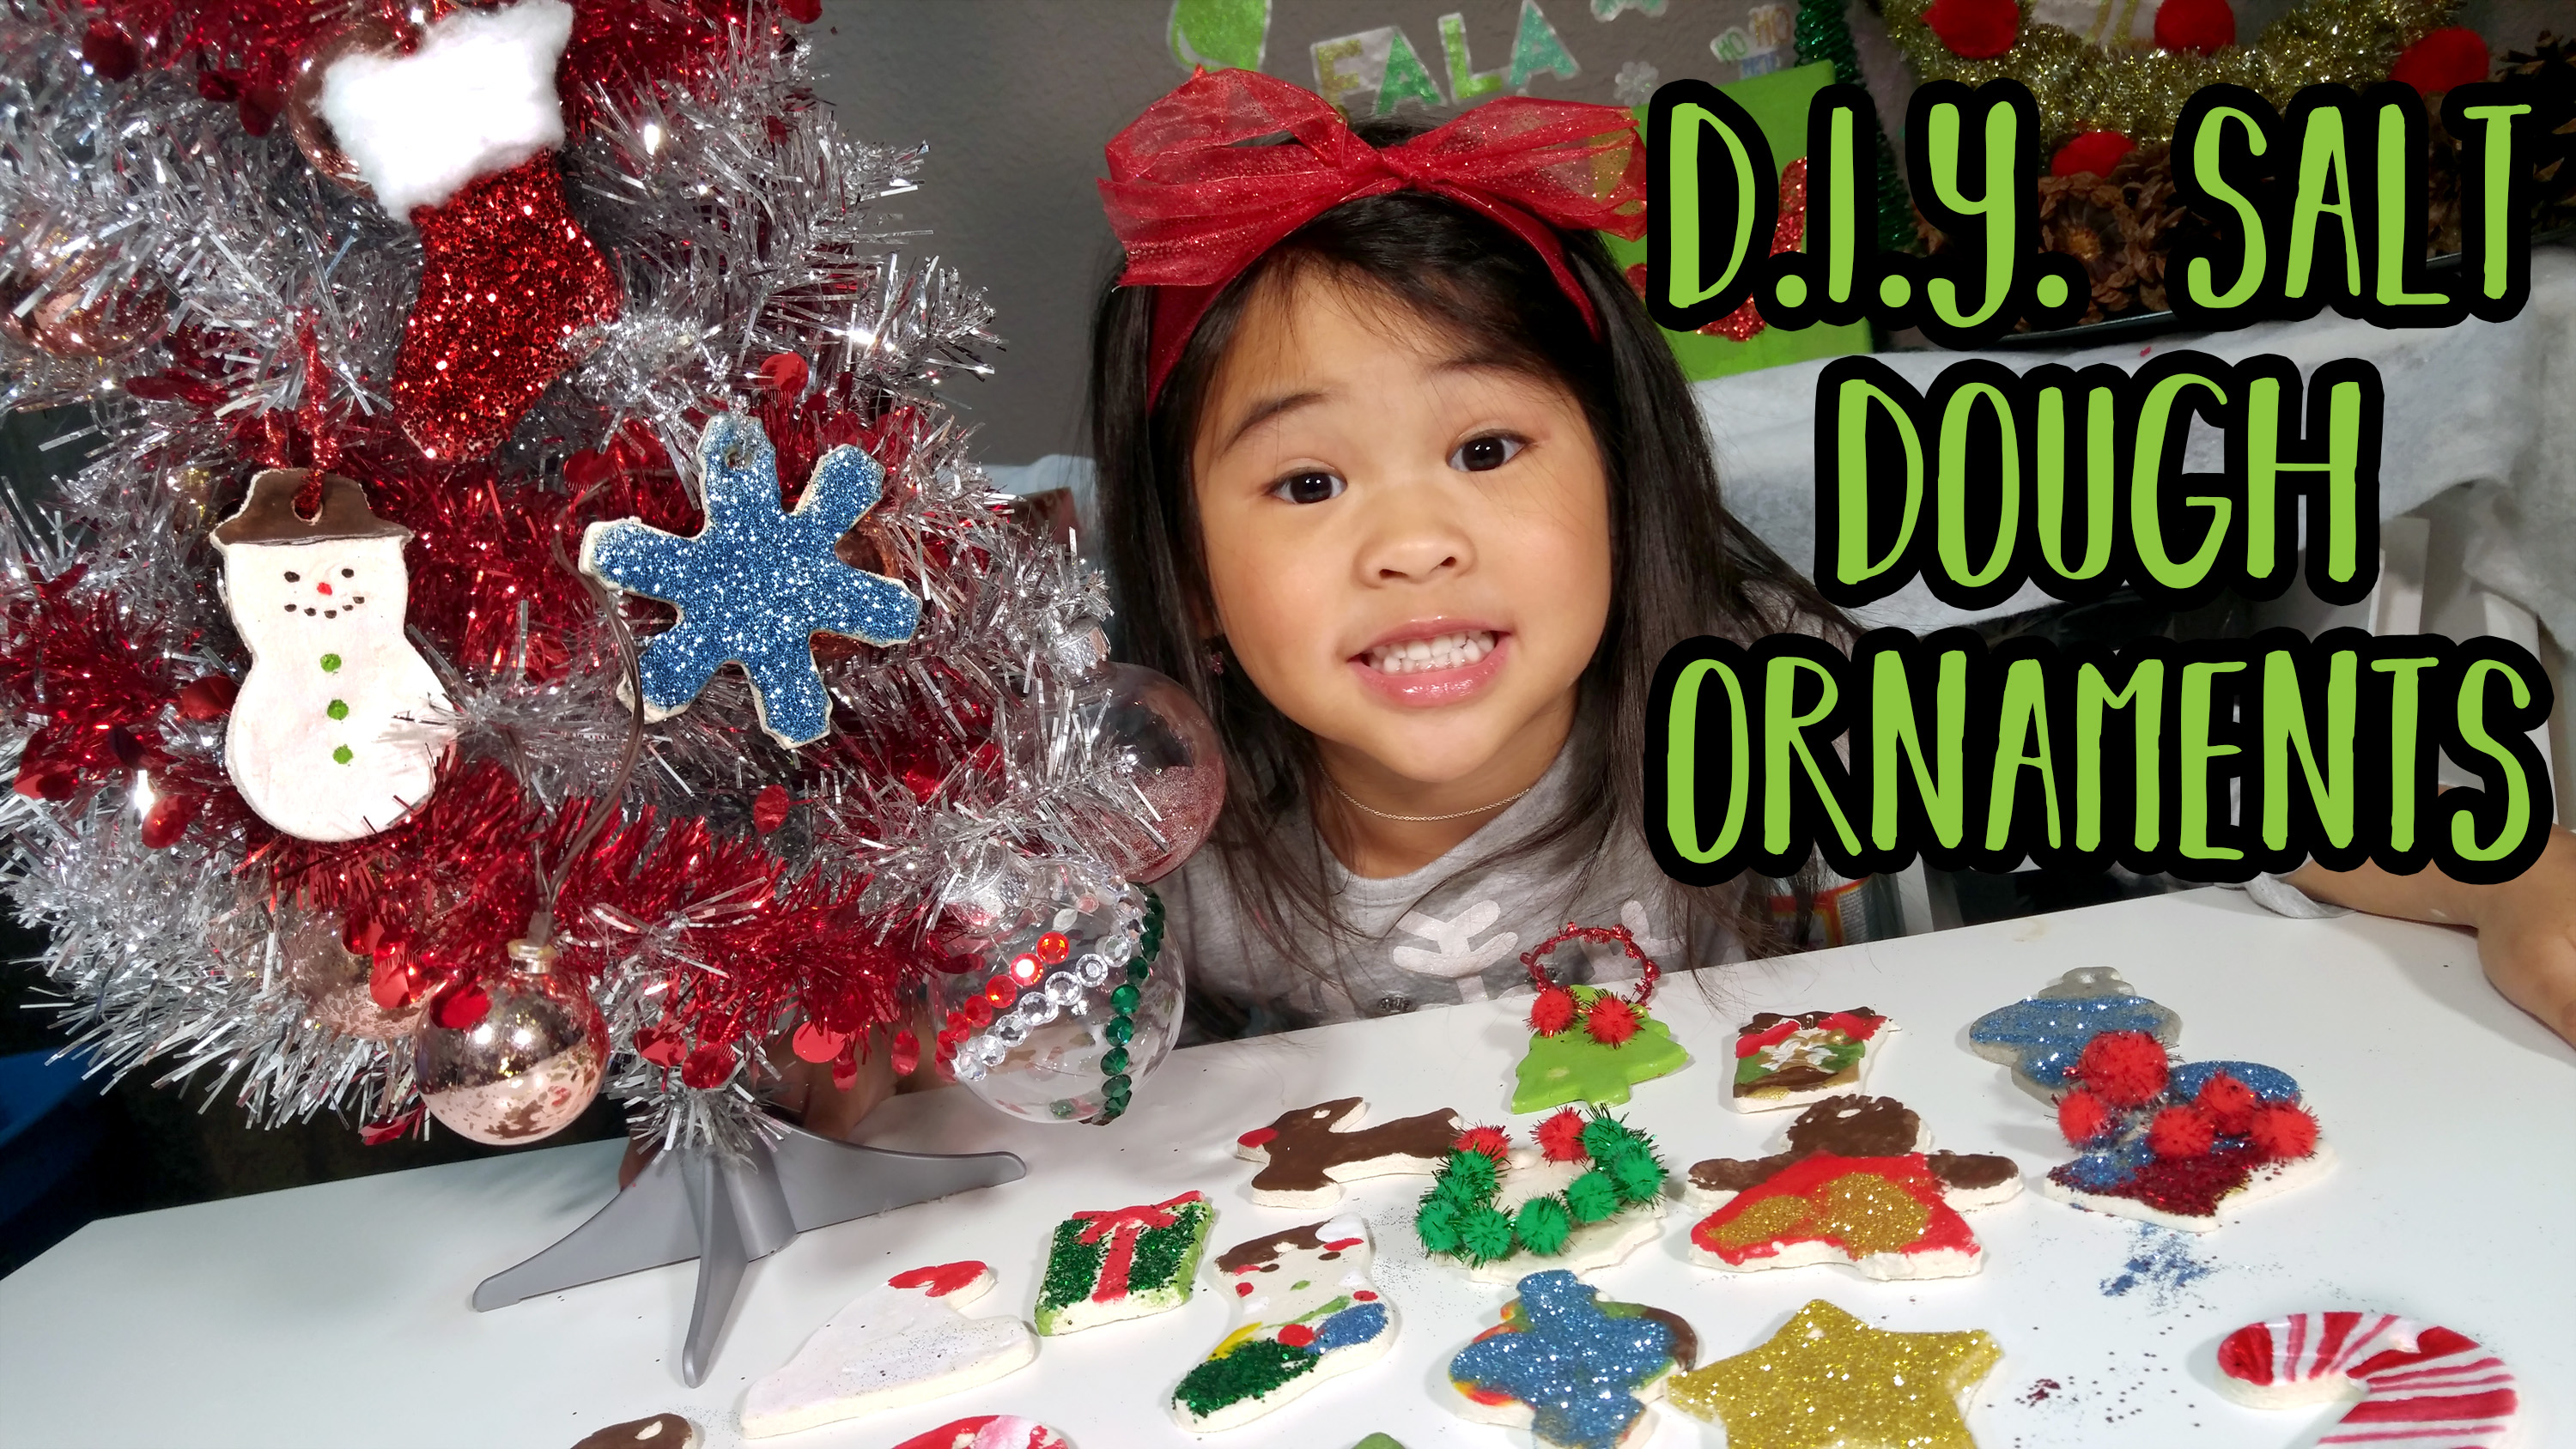 Holiday Crafts for Kids by Ollie on DIYwithOllie on YouTube